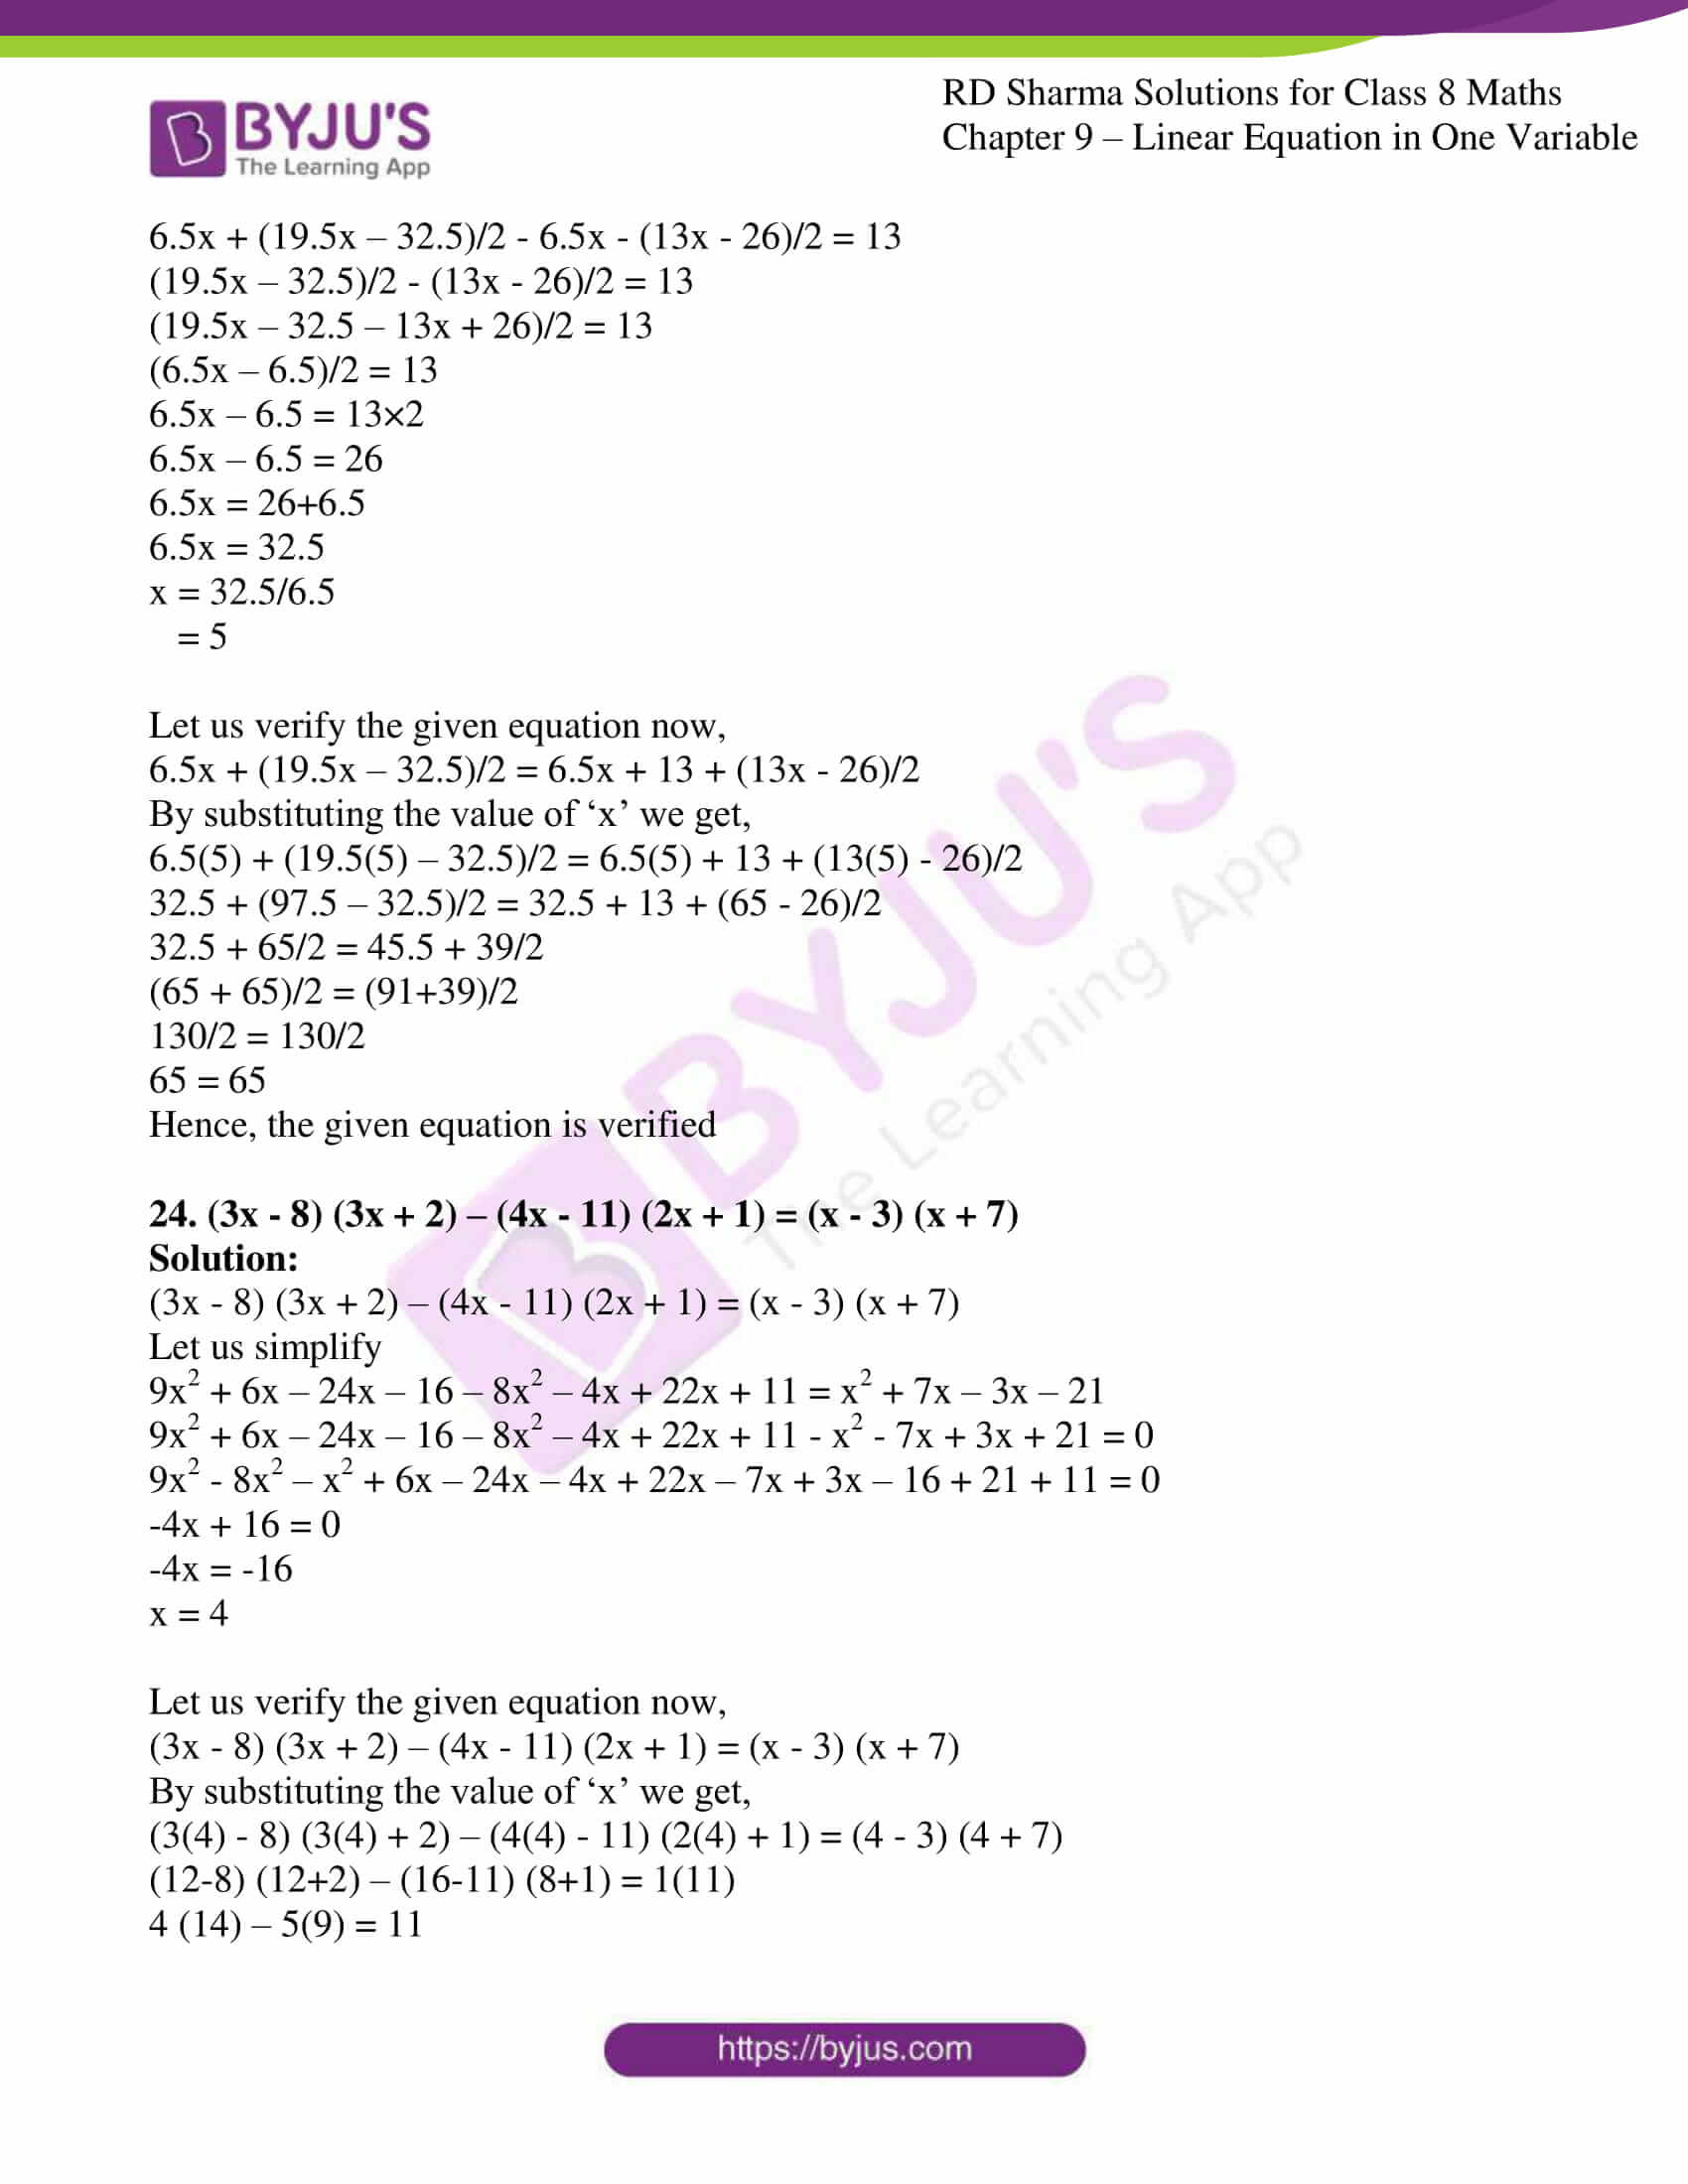 rd sharma class 8 maths chapter 9 exercise 2 15